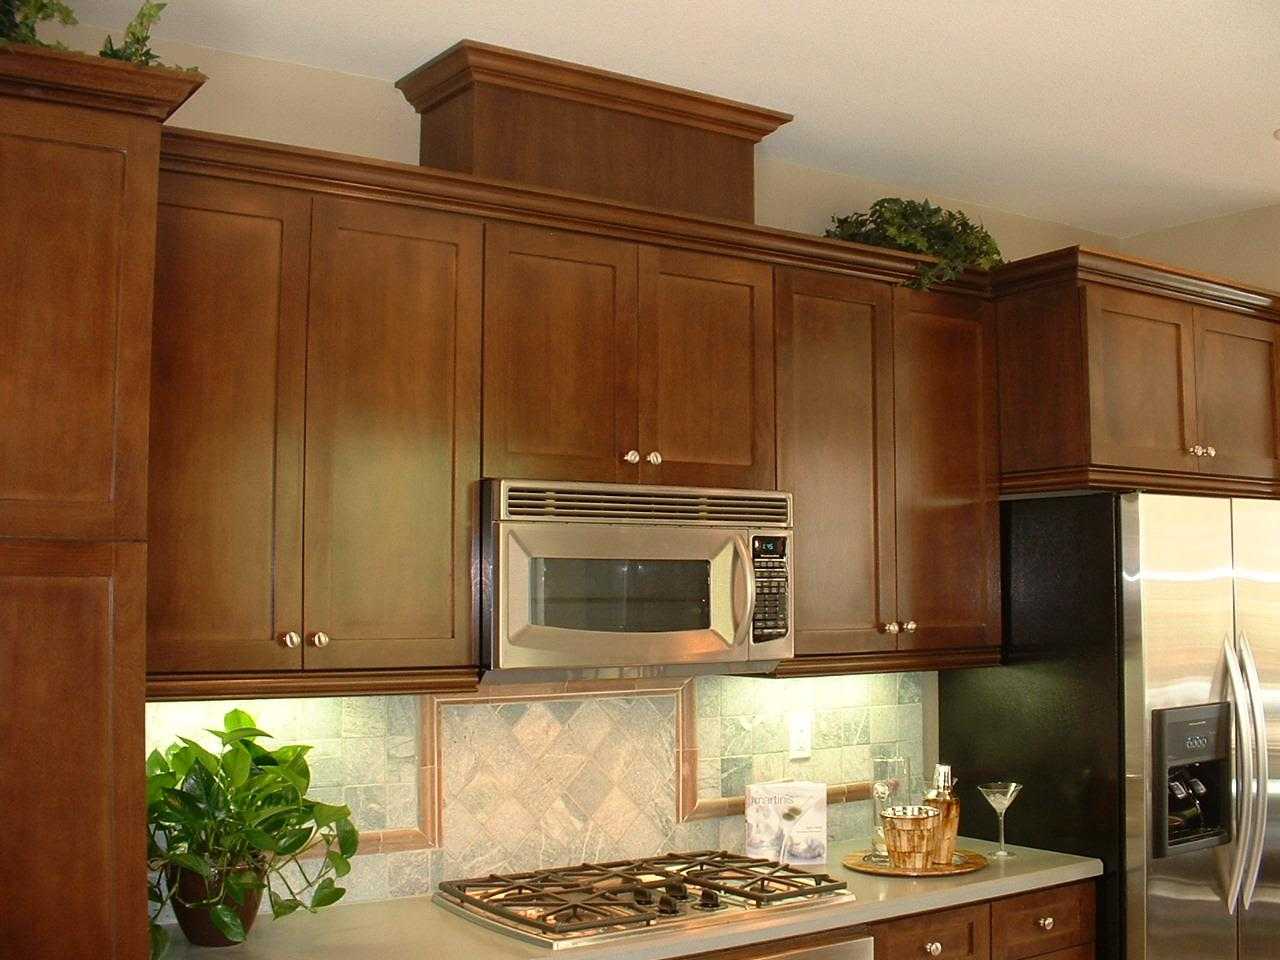 1000 images about shaker style cabinets on pinterest for Shaker kitchen cabinets